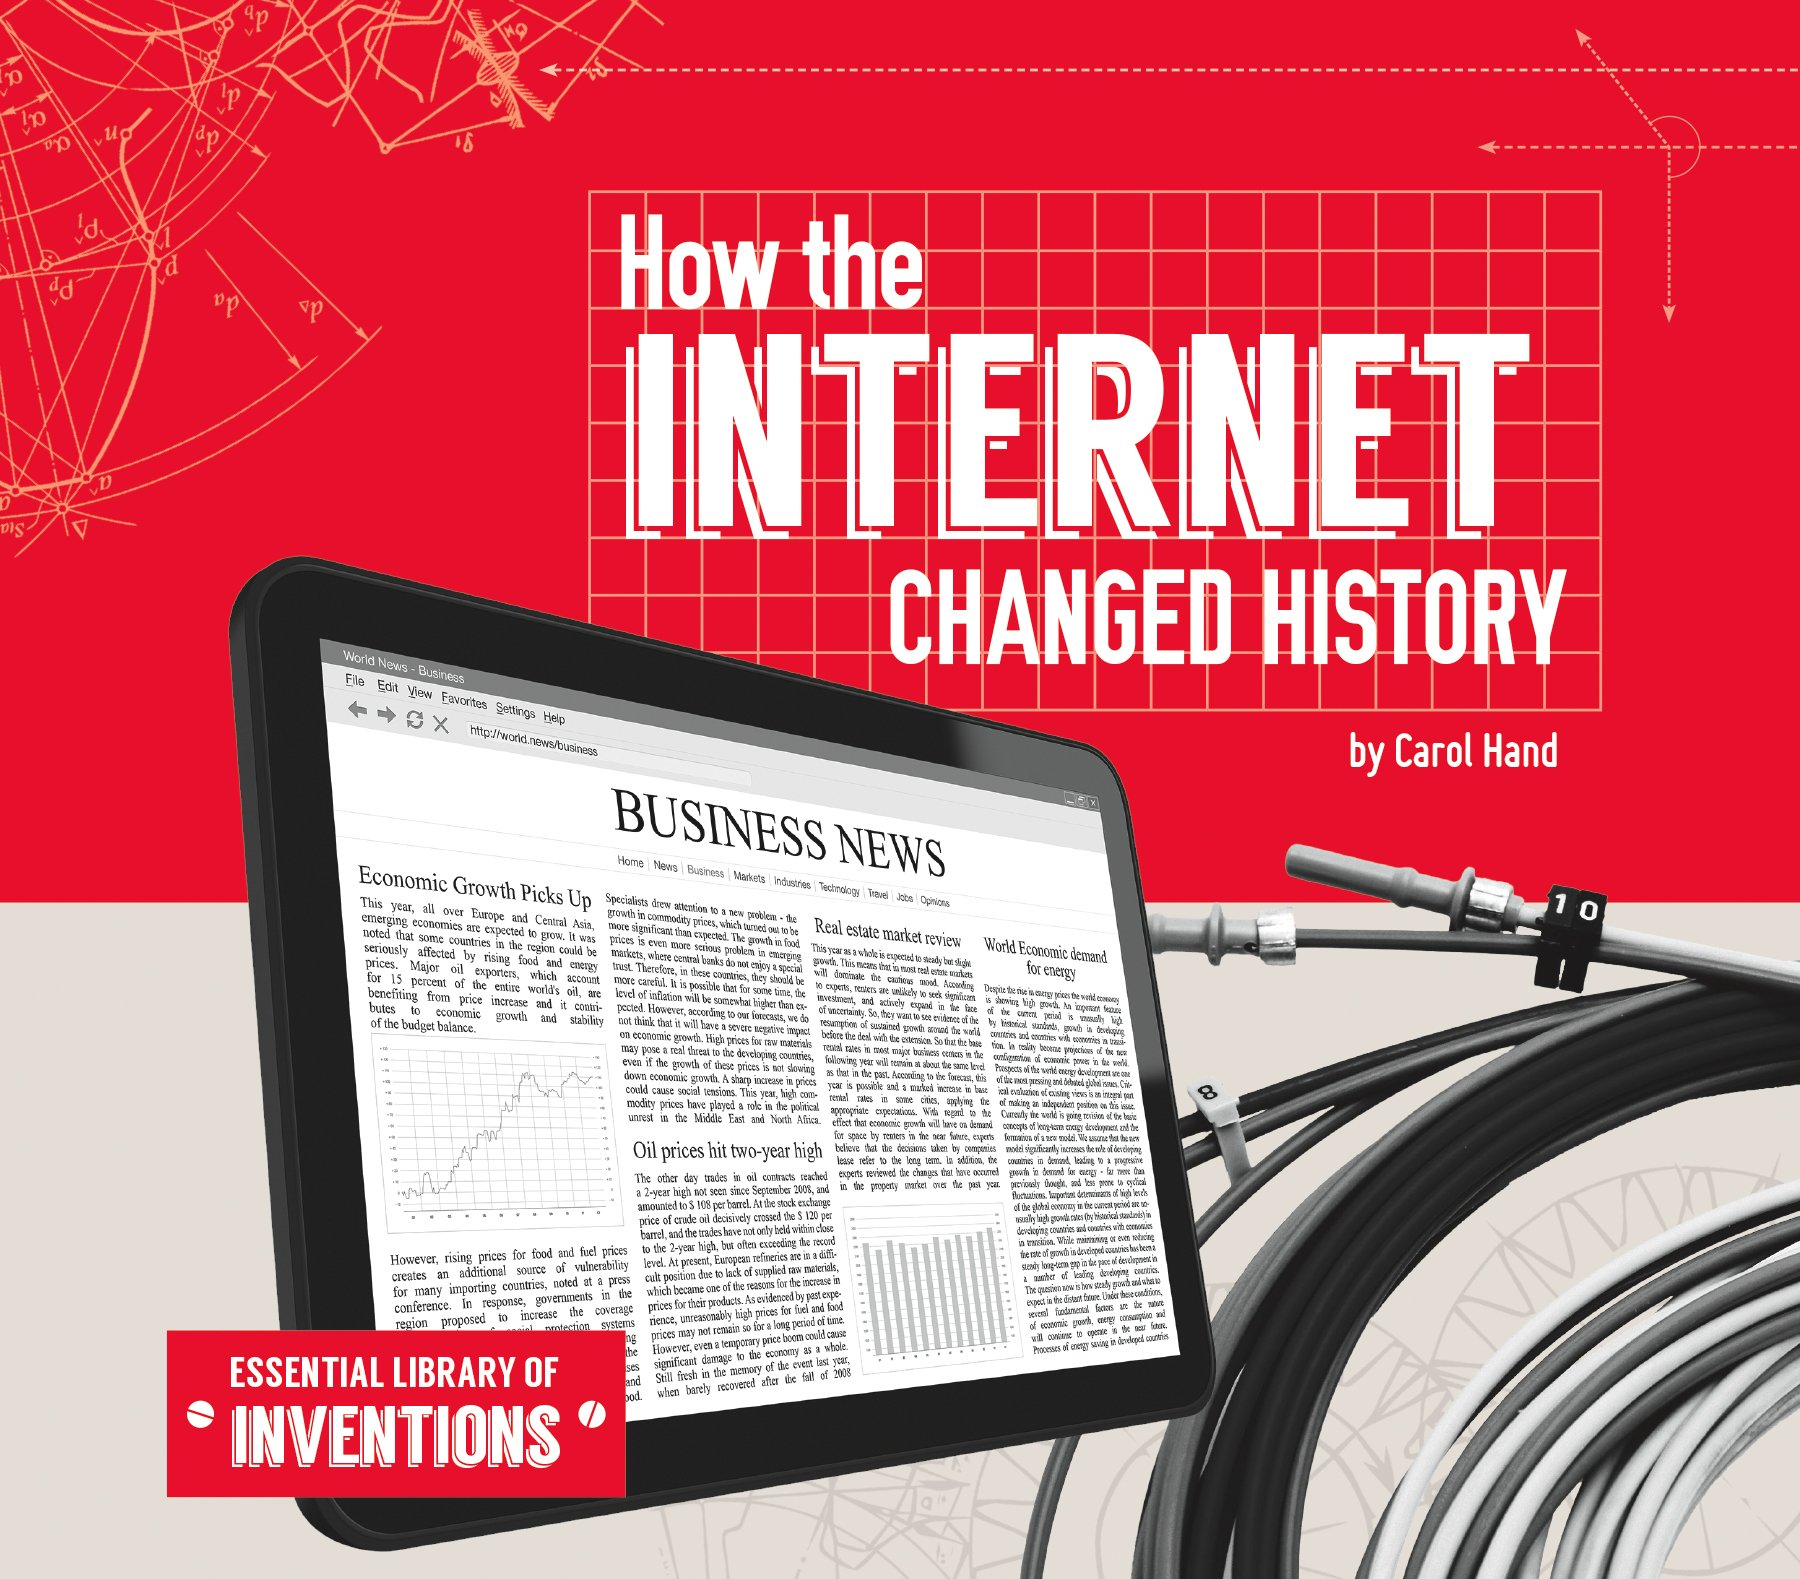 How the Internet Changed History (Essential Library of Inventions)